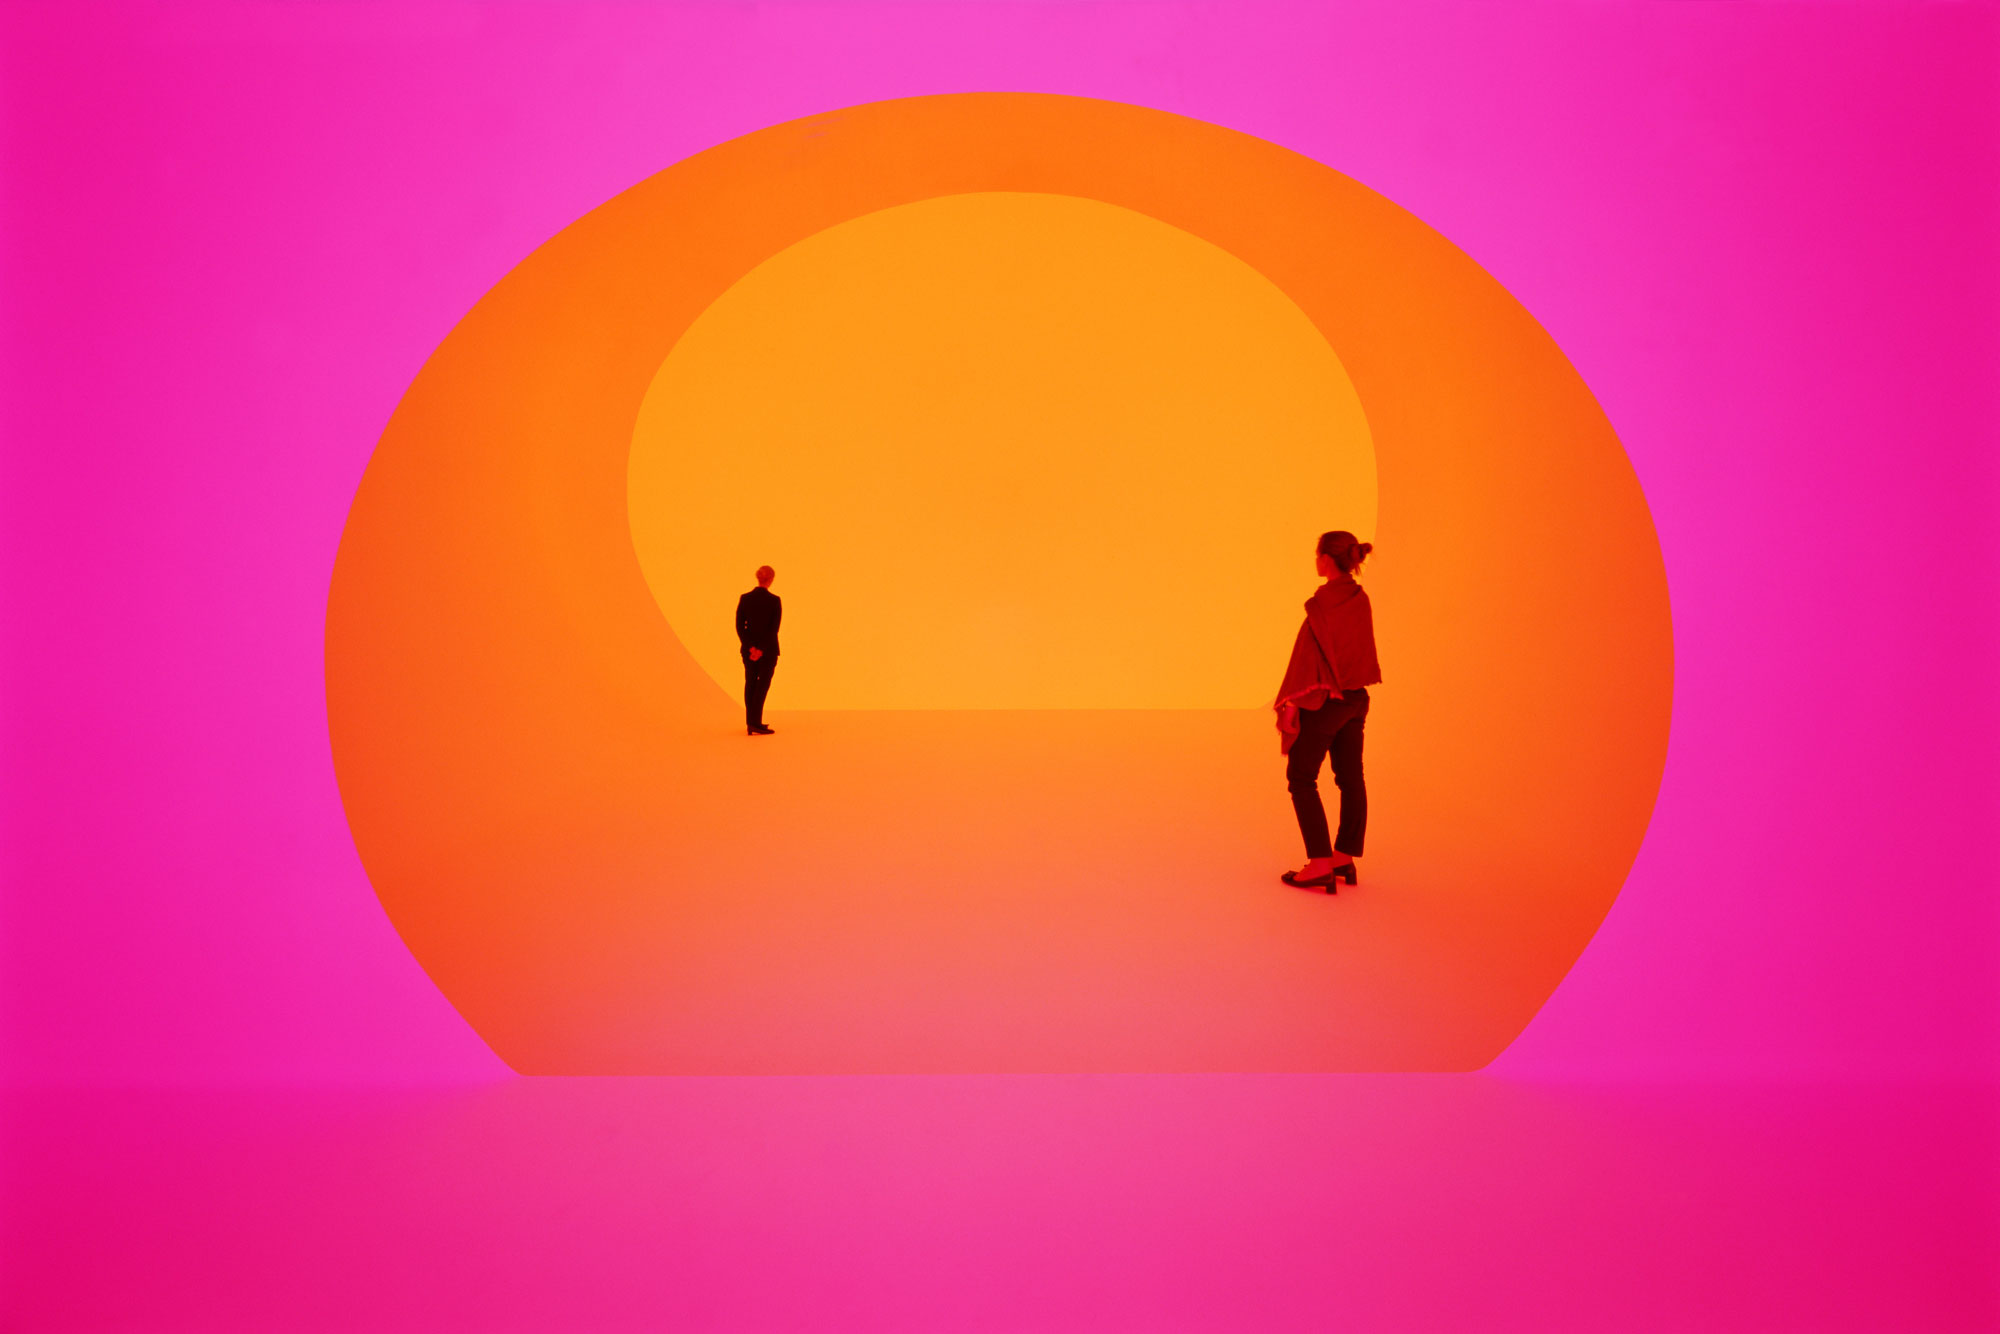 A new Turrell work at the Shops at Crystals in Las Vegas. The piece, tucked away on the third floor of Louis Vuitton, was commissioned by the French design house and is open to only four people at a time. (Photo by Florian Holzherr © James Turrell)